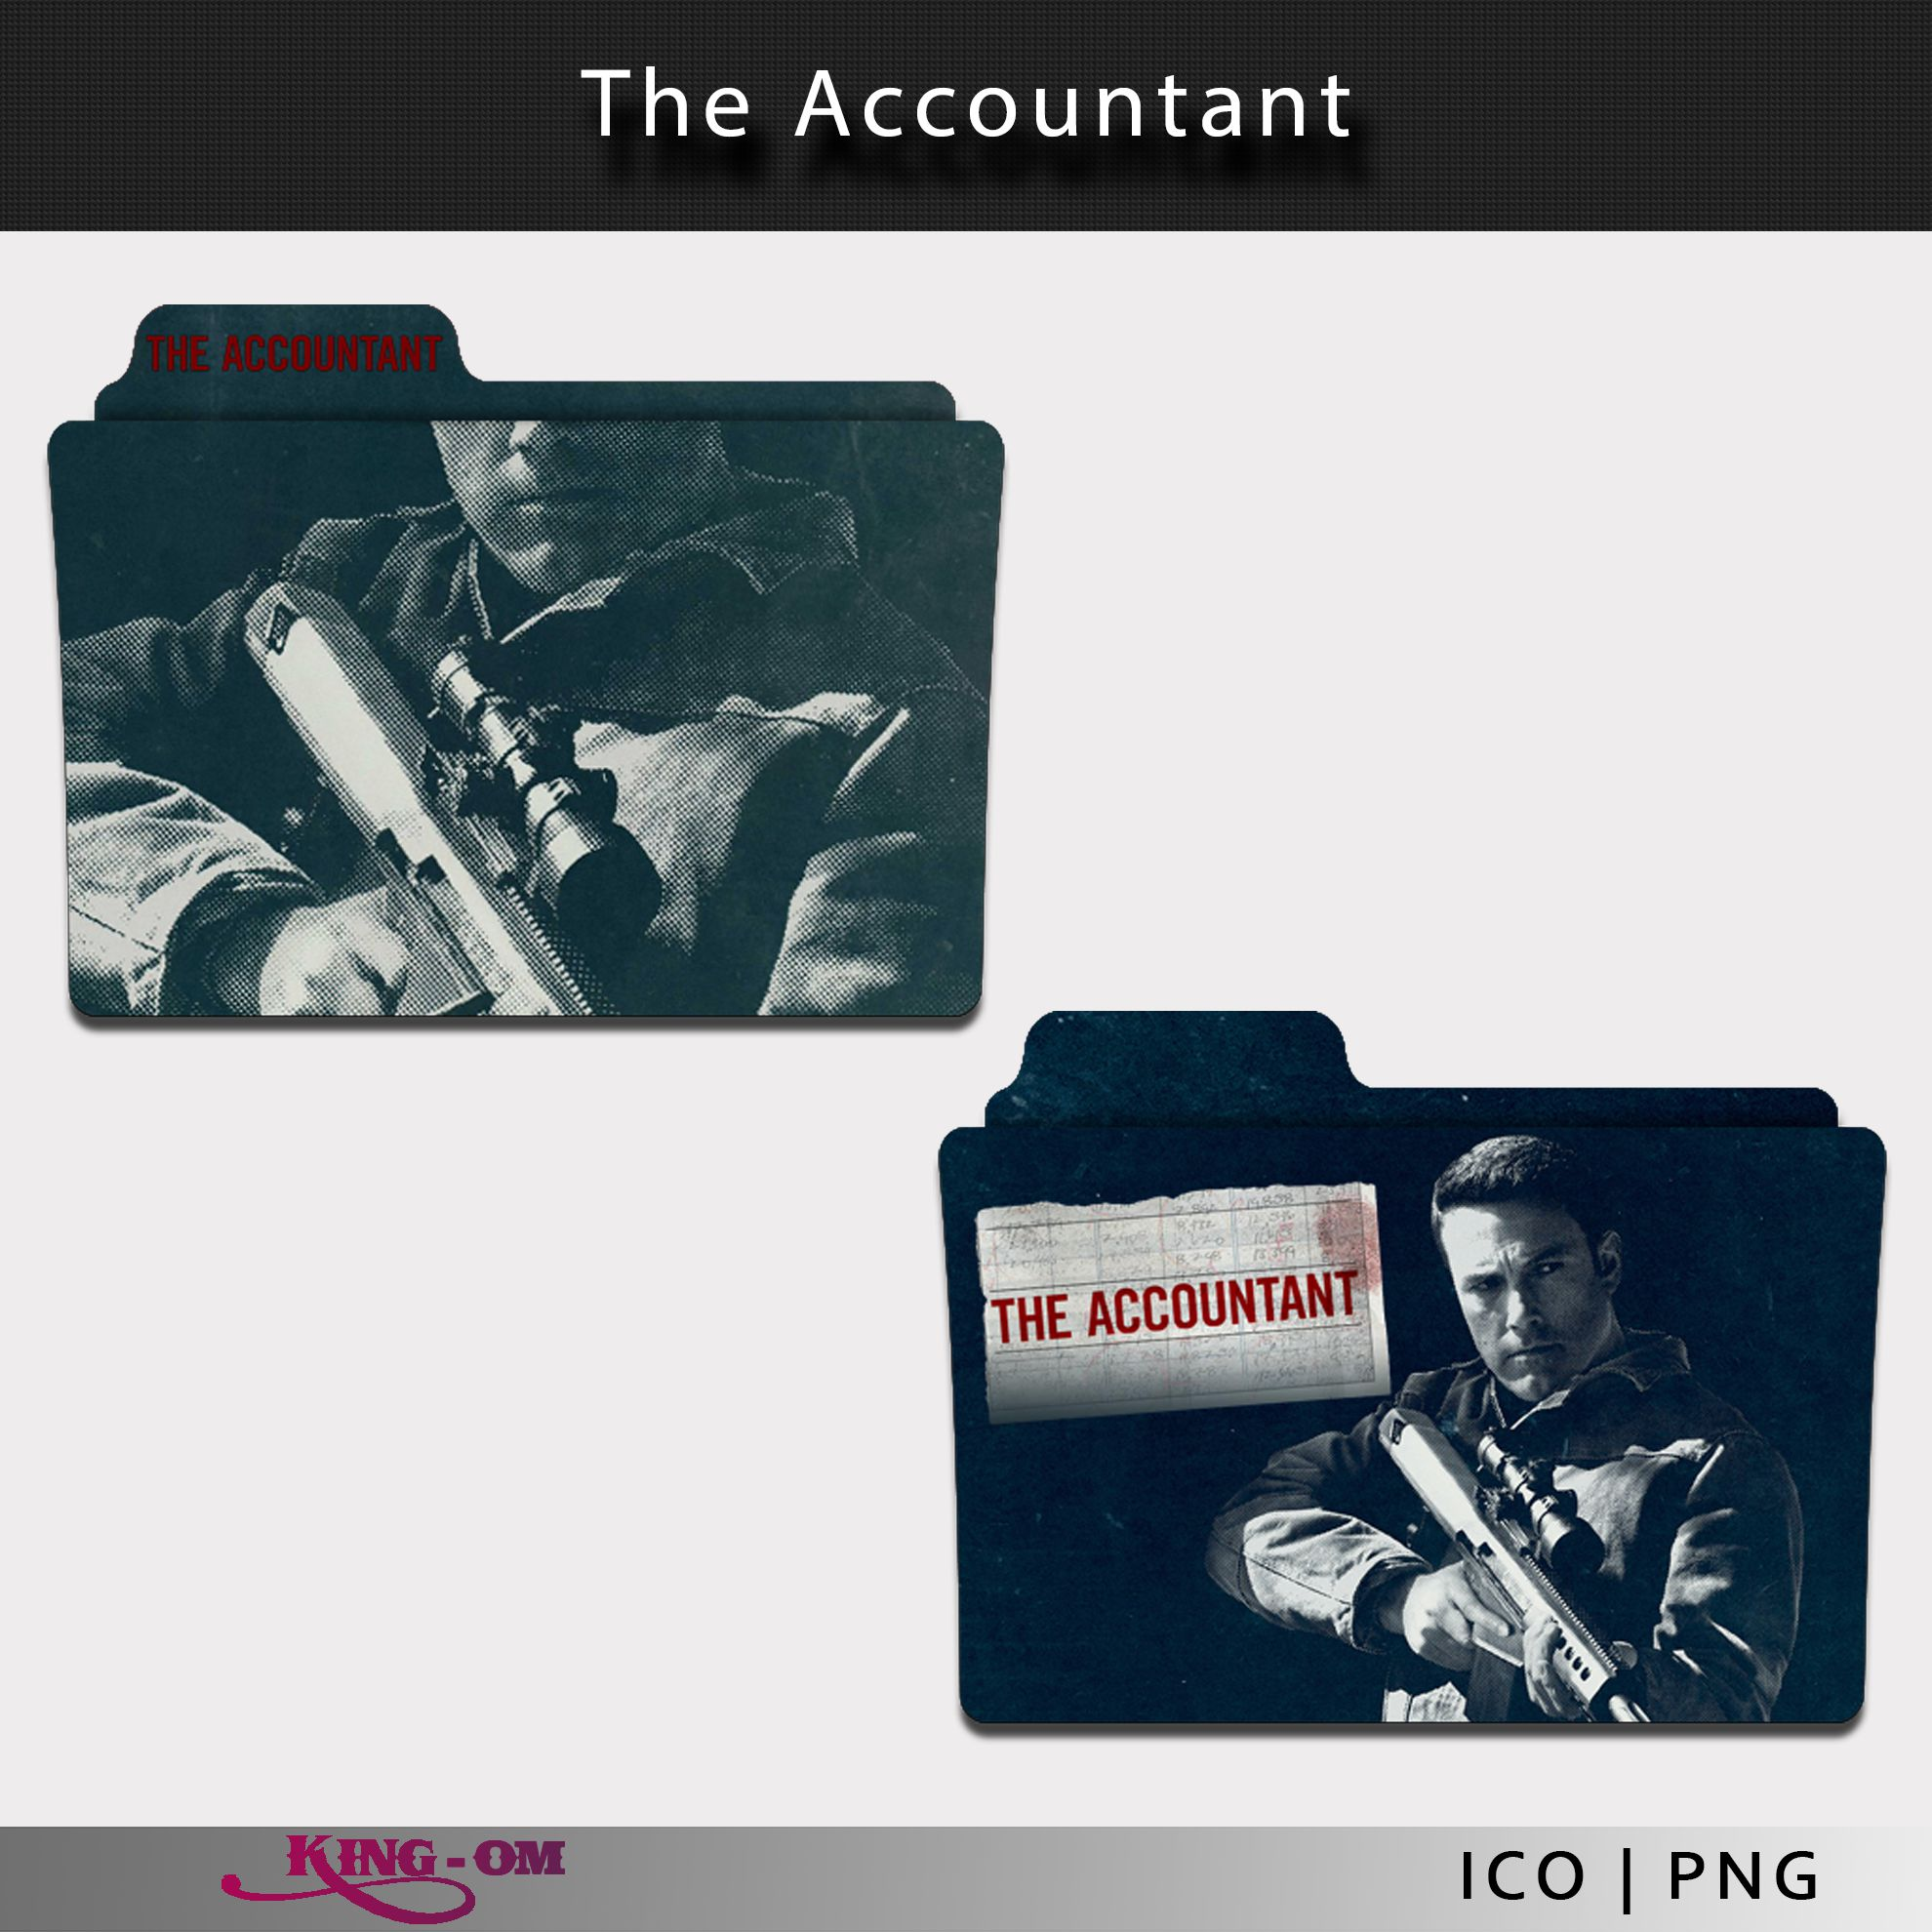 Accountant Movie Download Link